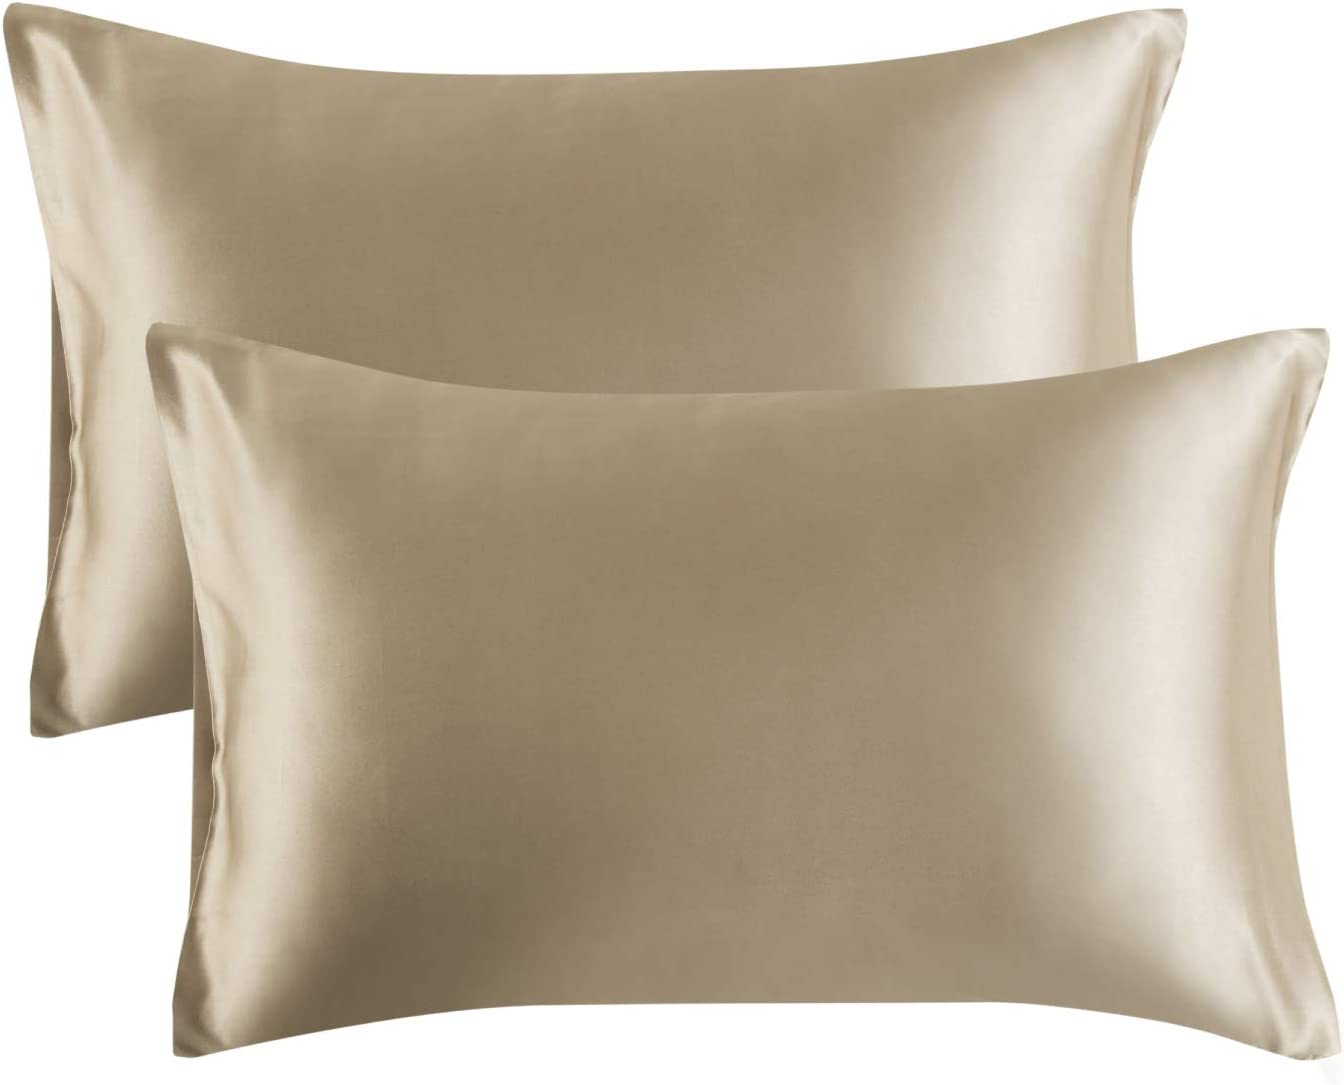 Bedsure Satin King Size Pillow Cases Set of 2, Taupe, 20x40 inches - Pillowcase for Hair and Skin - Satin Pillow Covers with Envelope Closure